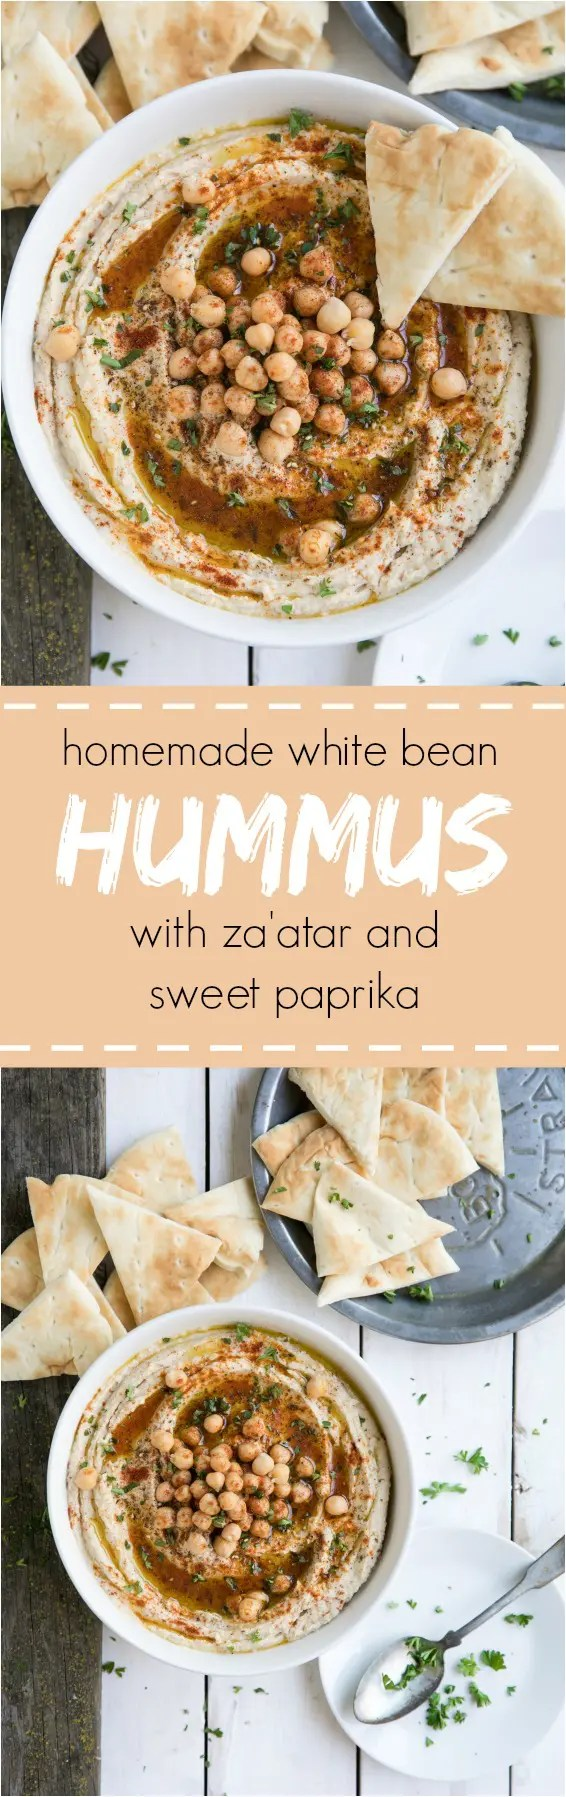 Homemade White Bean Hummus with Za\'atar and Sweet Paprika. #hummus #chickpea #dip #side #appetizer